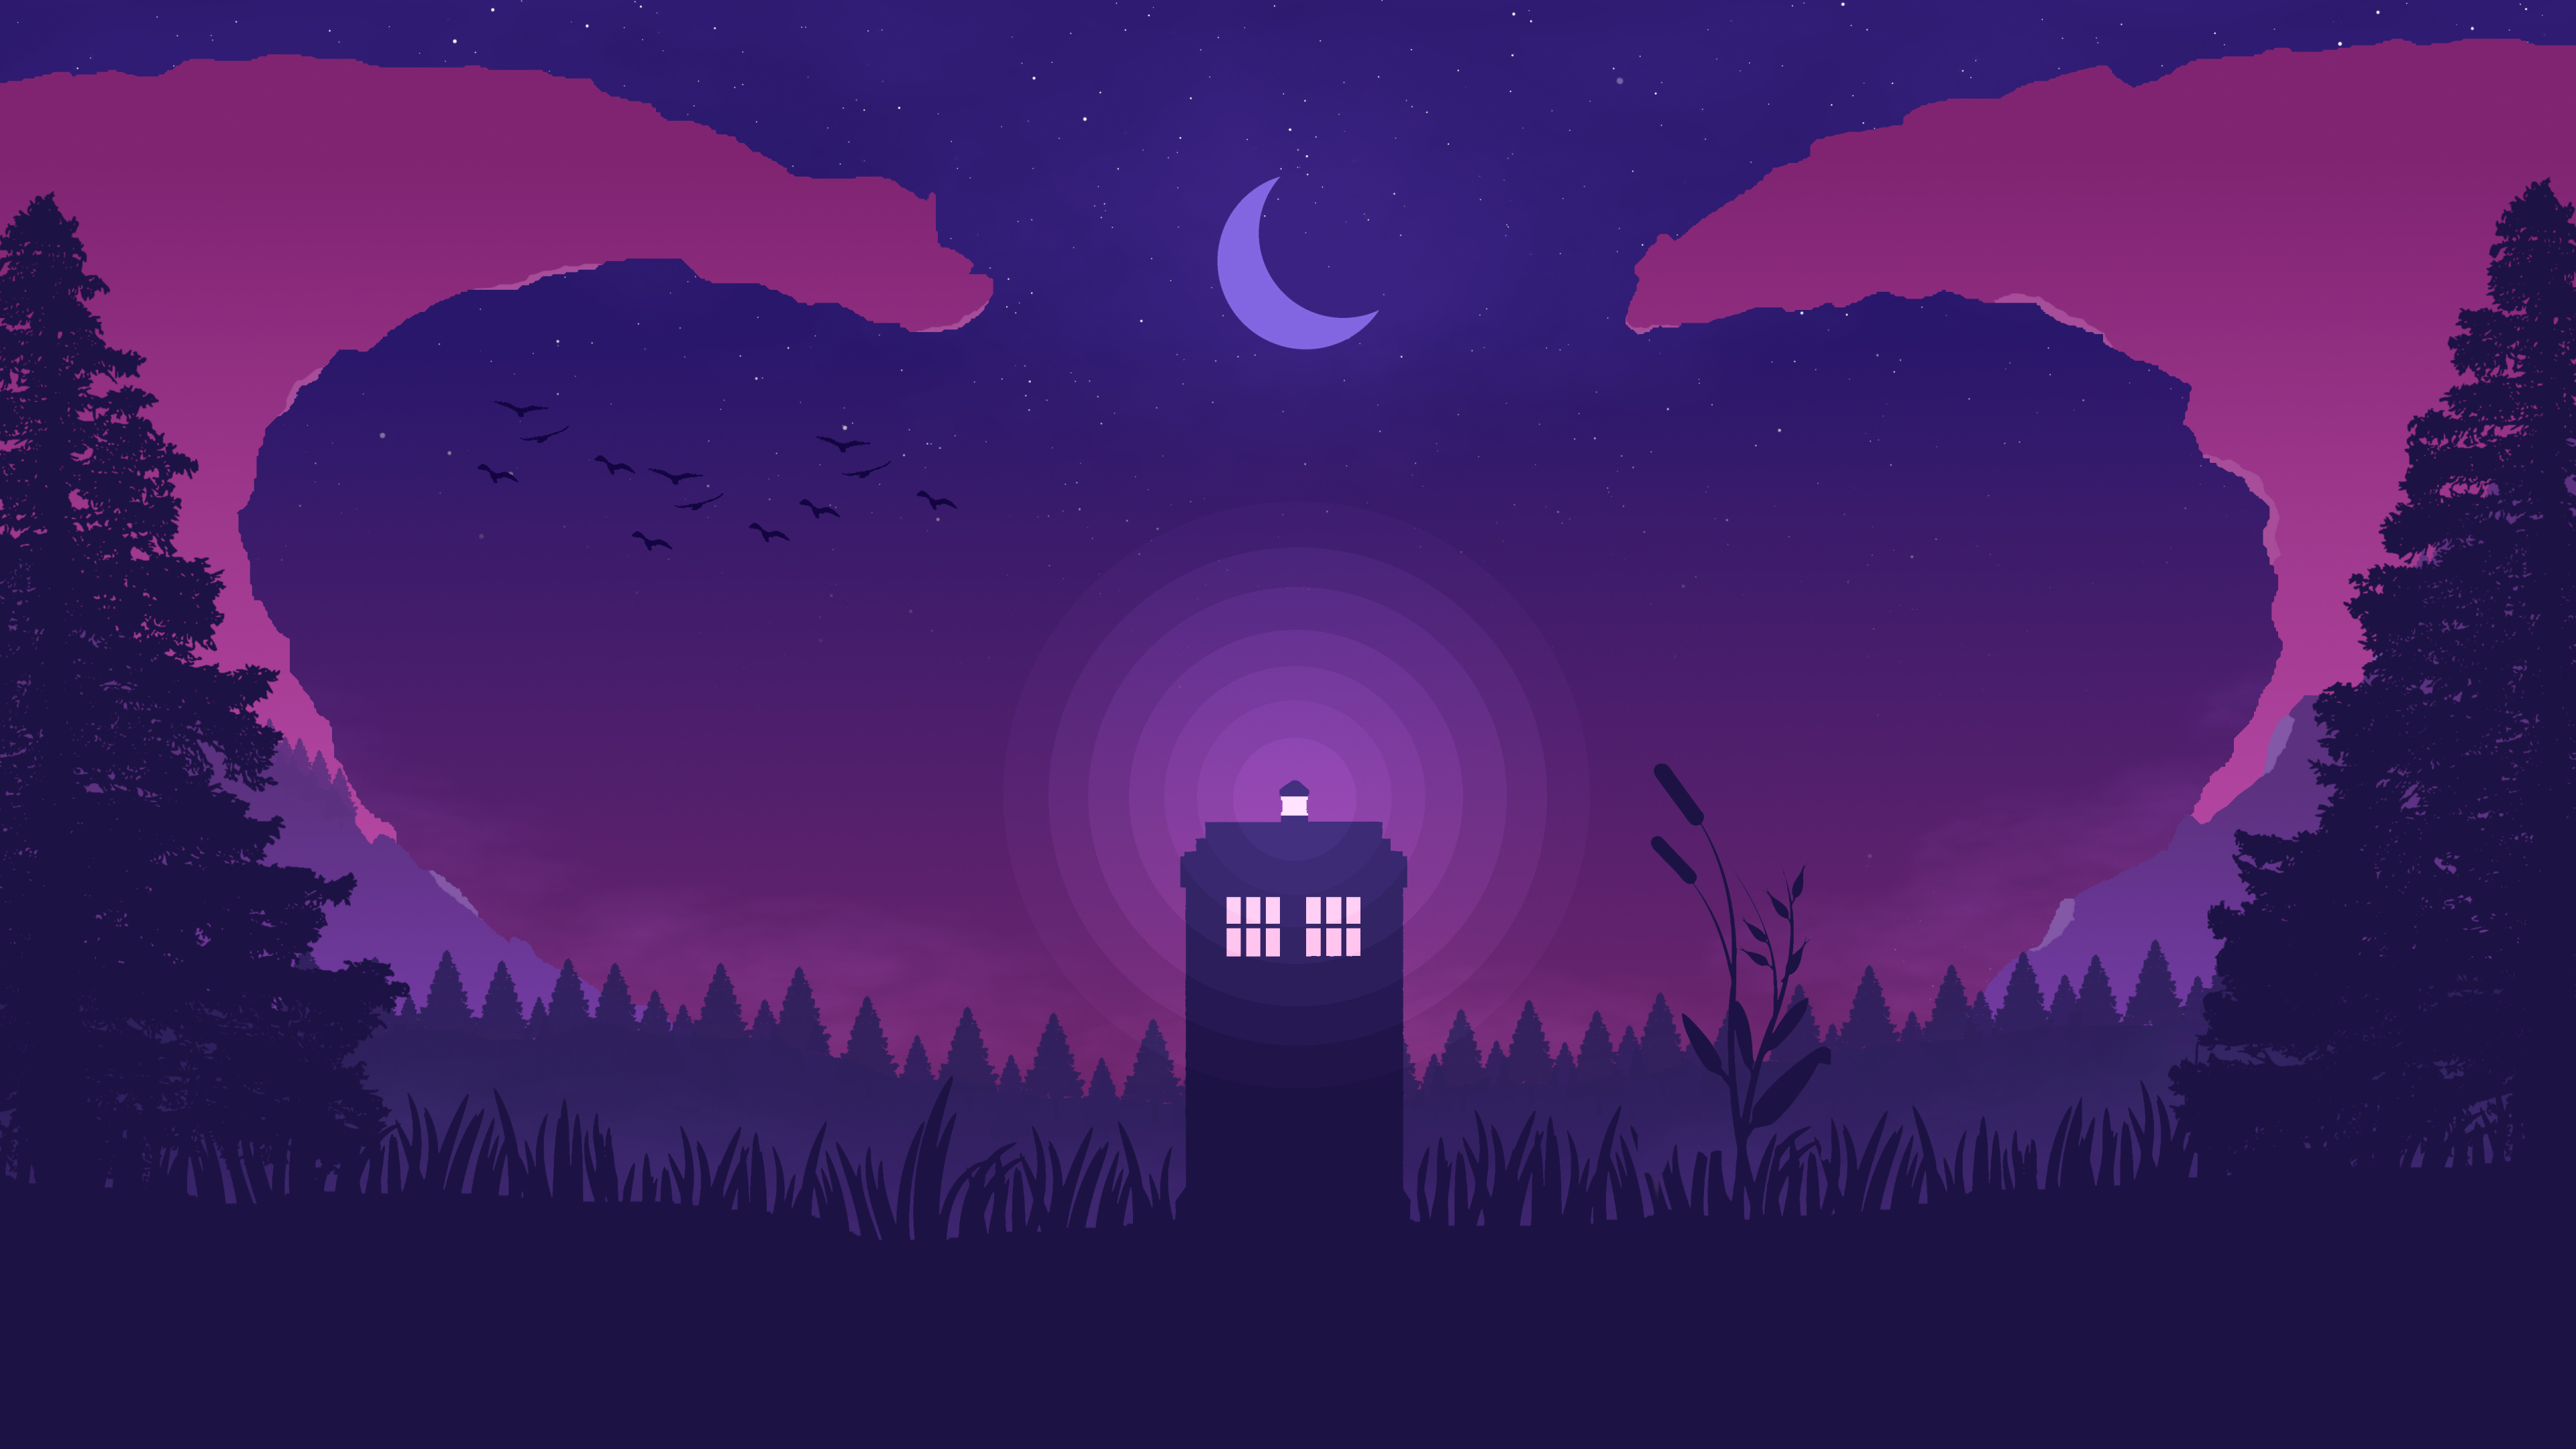 3840x2160 Doctor Who Minimal Art 4k Wallpaper Hd Minimalist